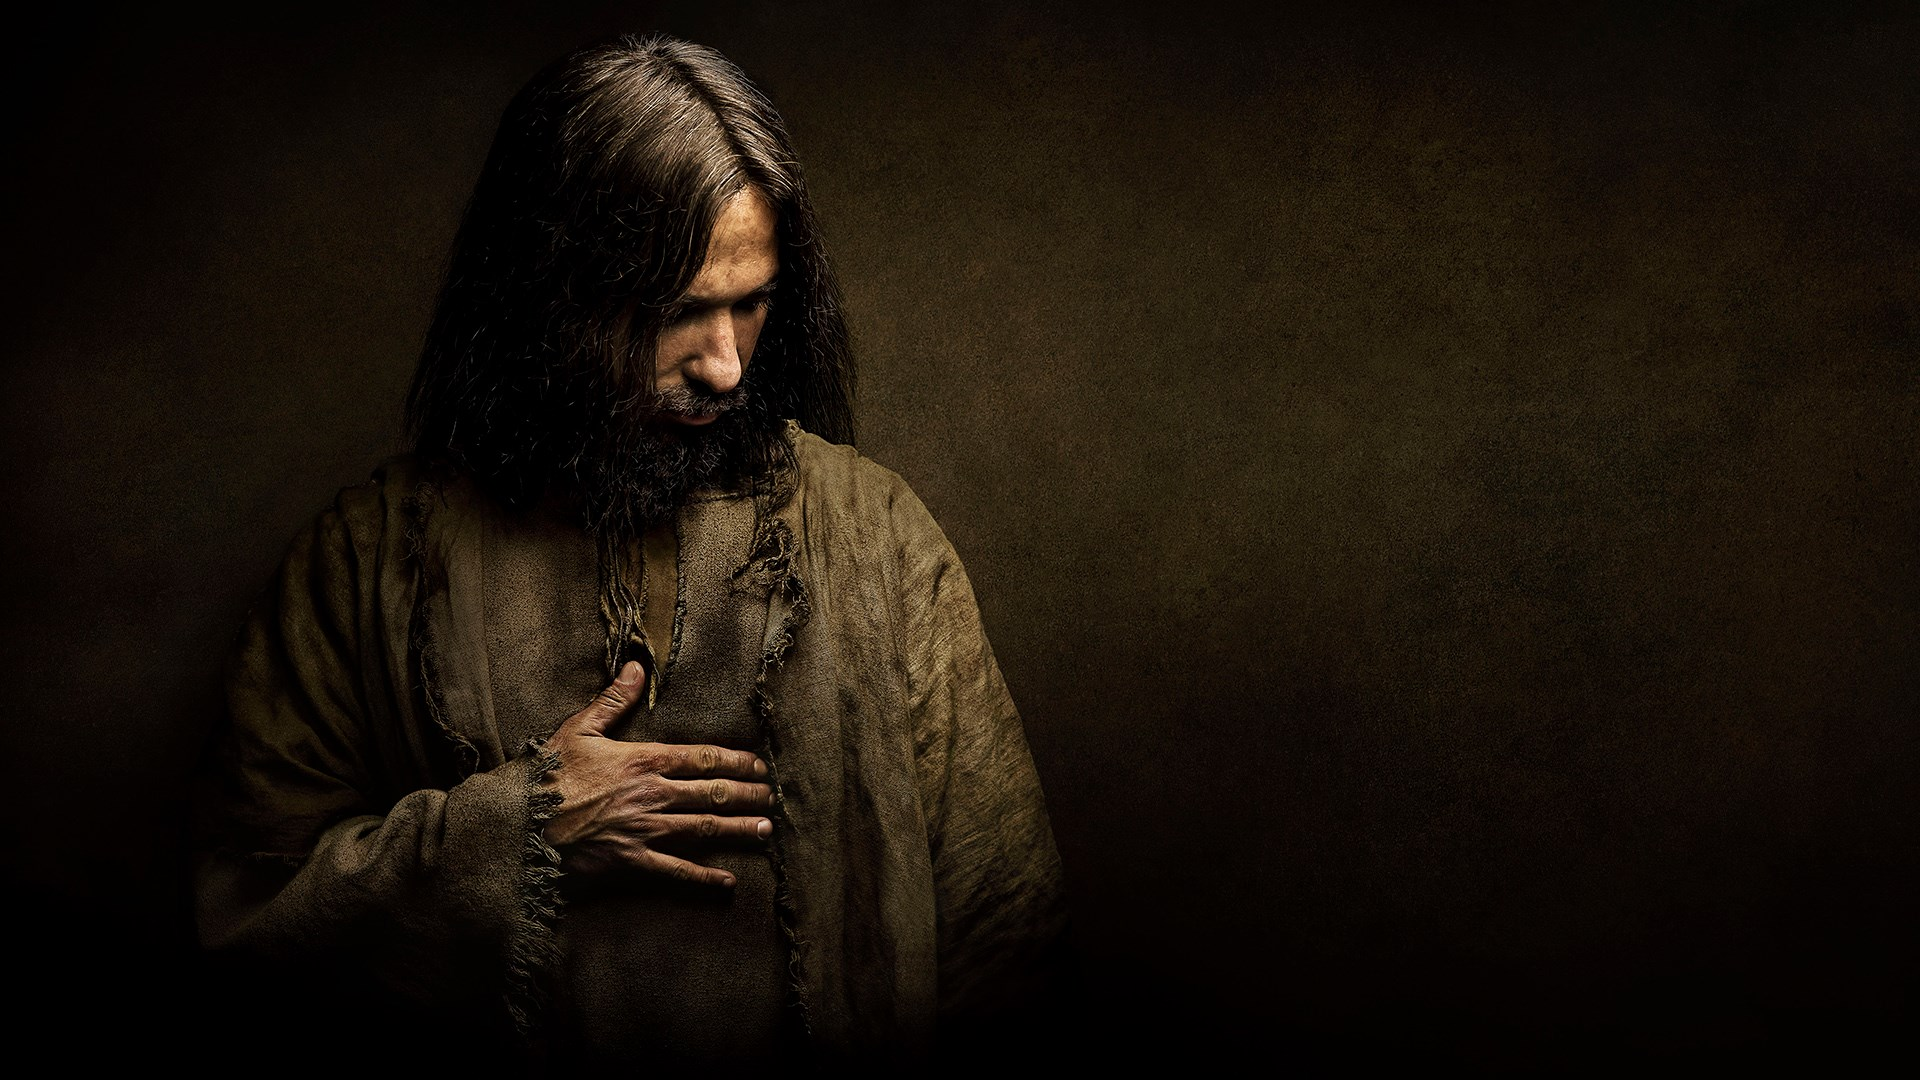 1920x1080-free-screensaver-for-killing-jesus-wallpaper-wpc900753